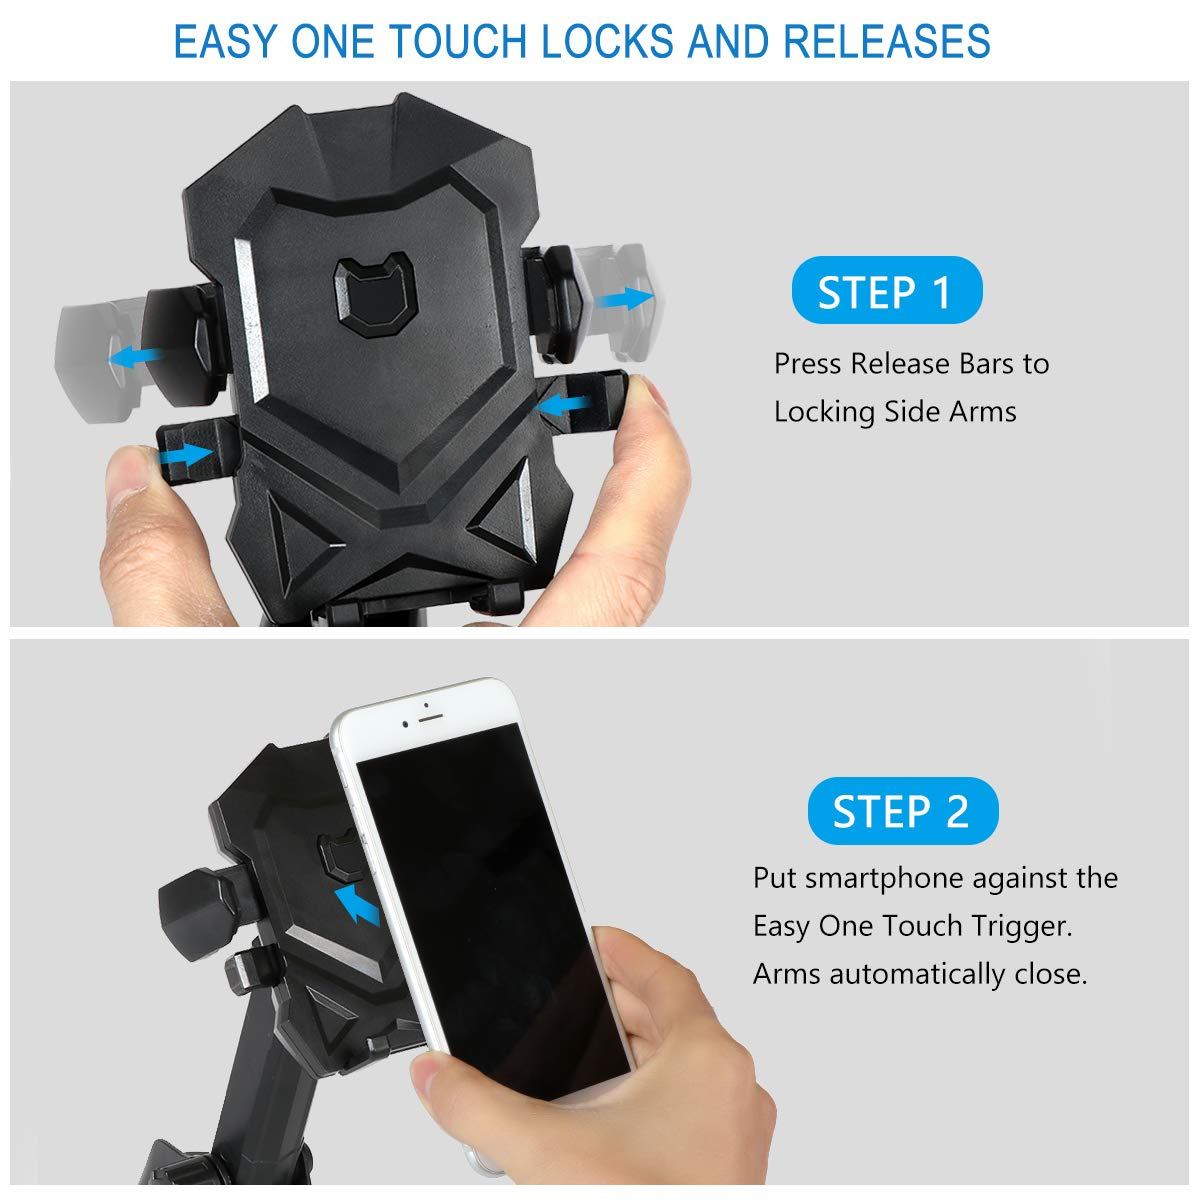 Dashboard /& Windshield Car Mount Phone Holder Compatible iPhone Xs X 8 Plus 7 Plus 6 6s Samsung Galaxy S9 S8 S7 S6 Edge and More SincereFly 4351495853 Long Neck Phone Cradle